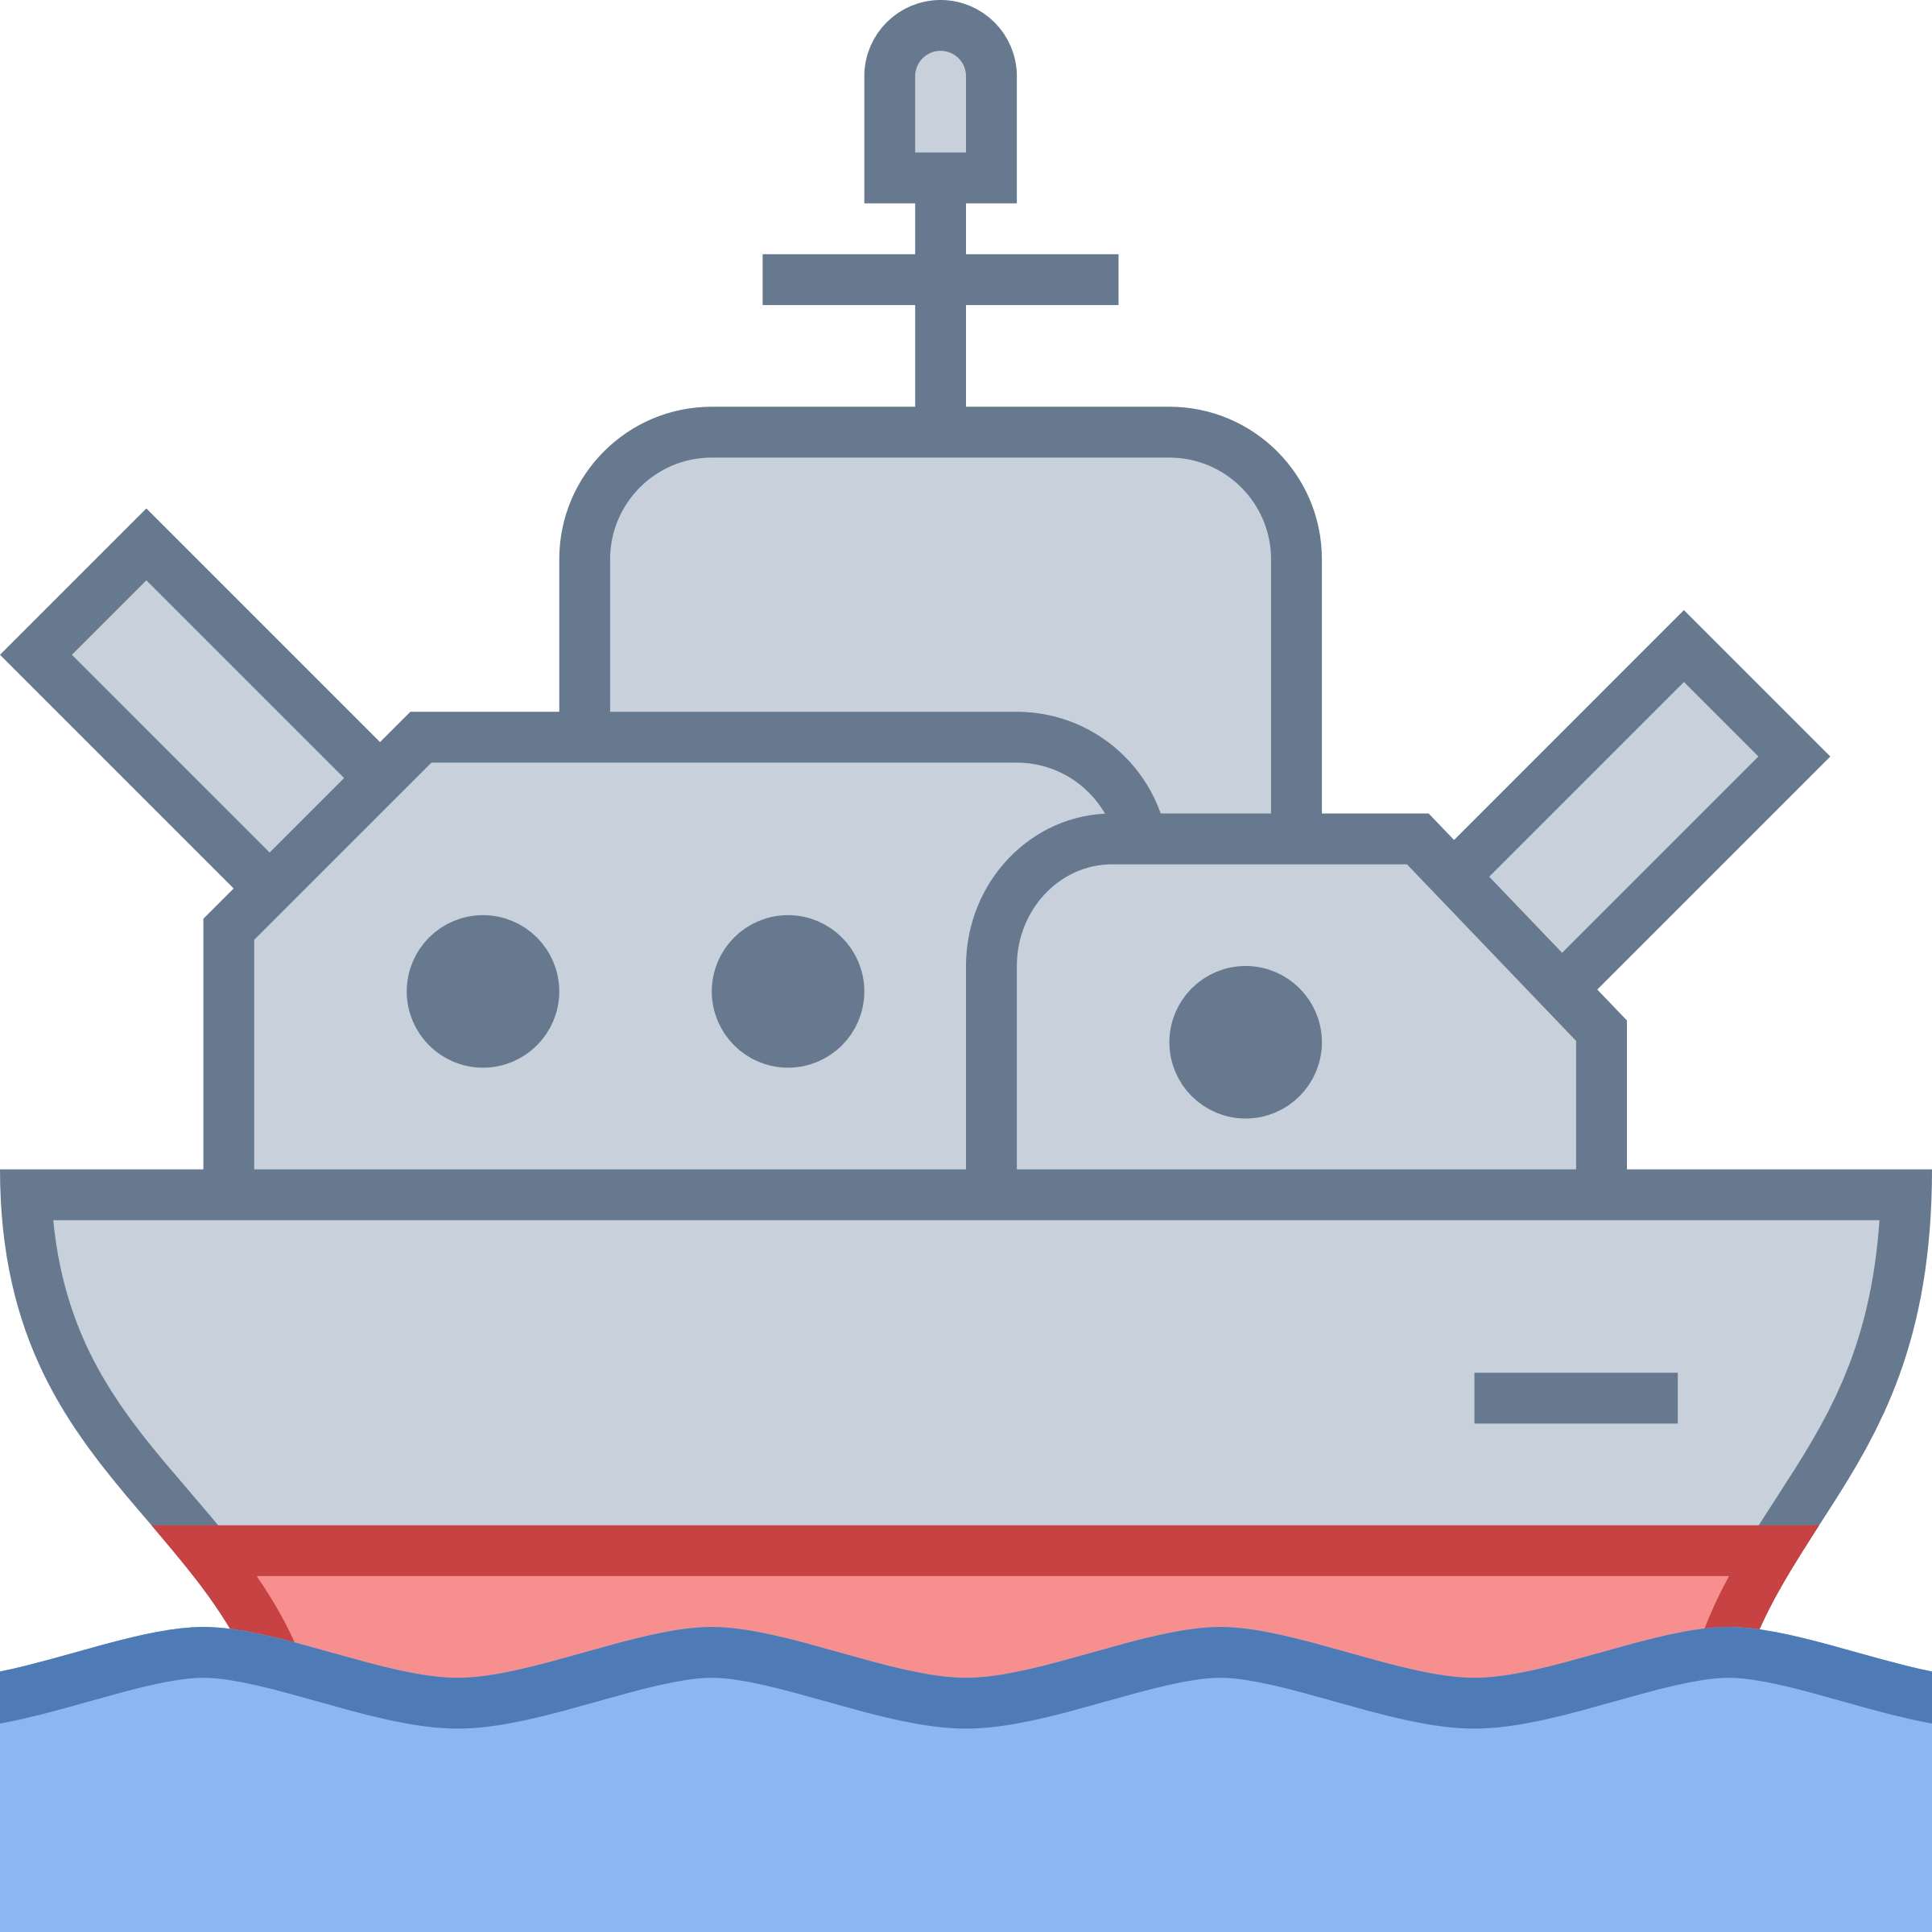 Battleship 2 by Designer.io